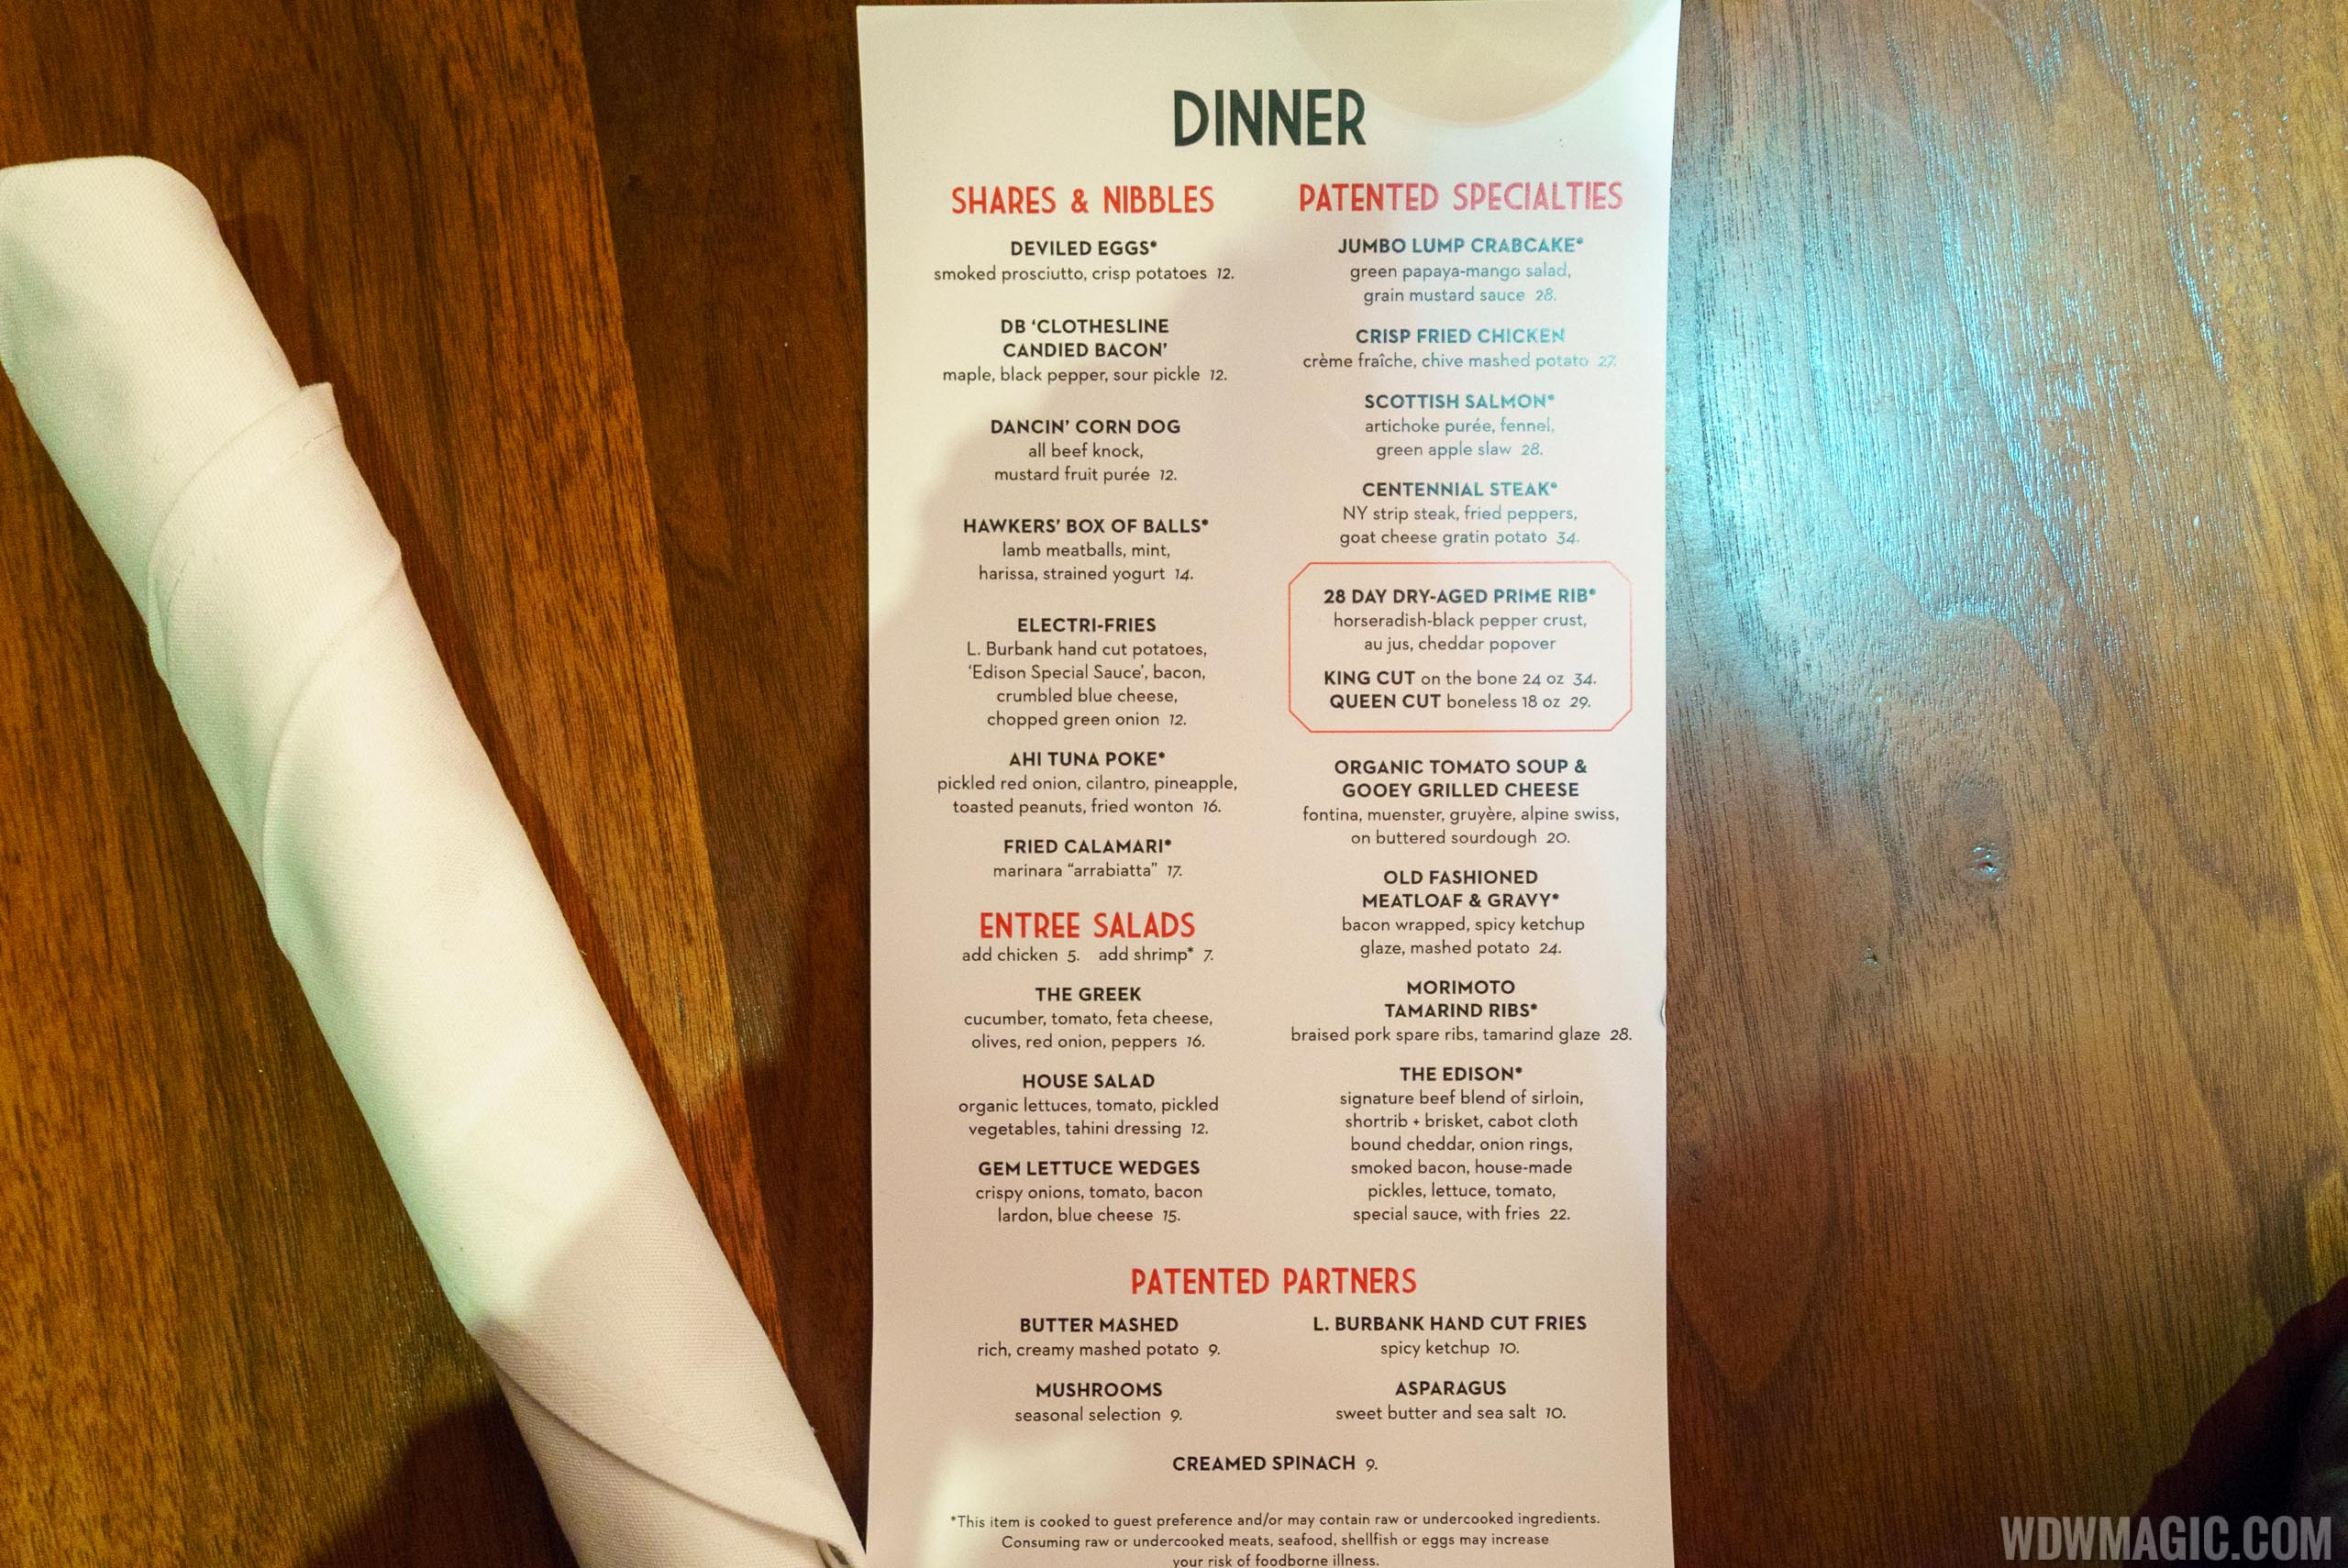 The Edison - Dinner menu